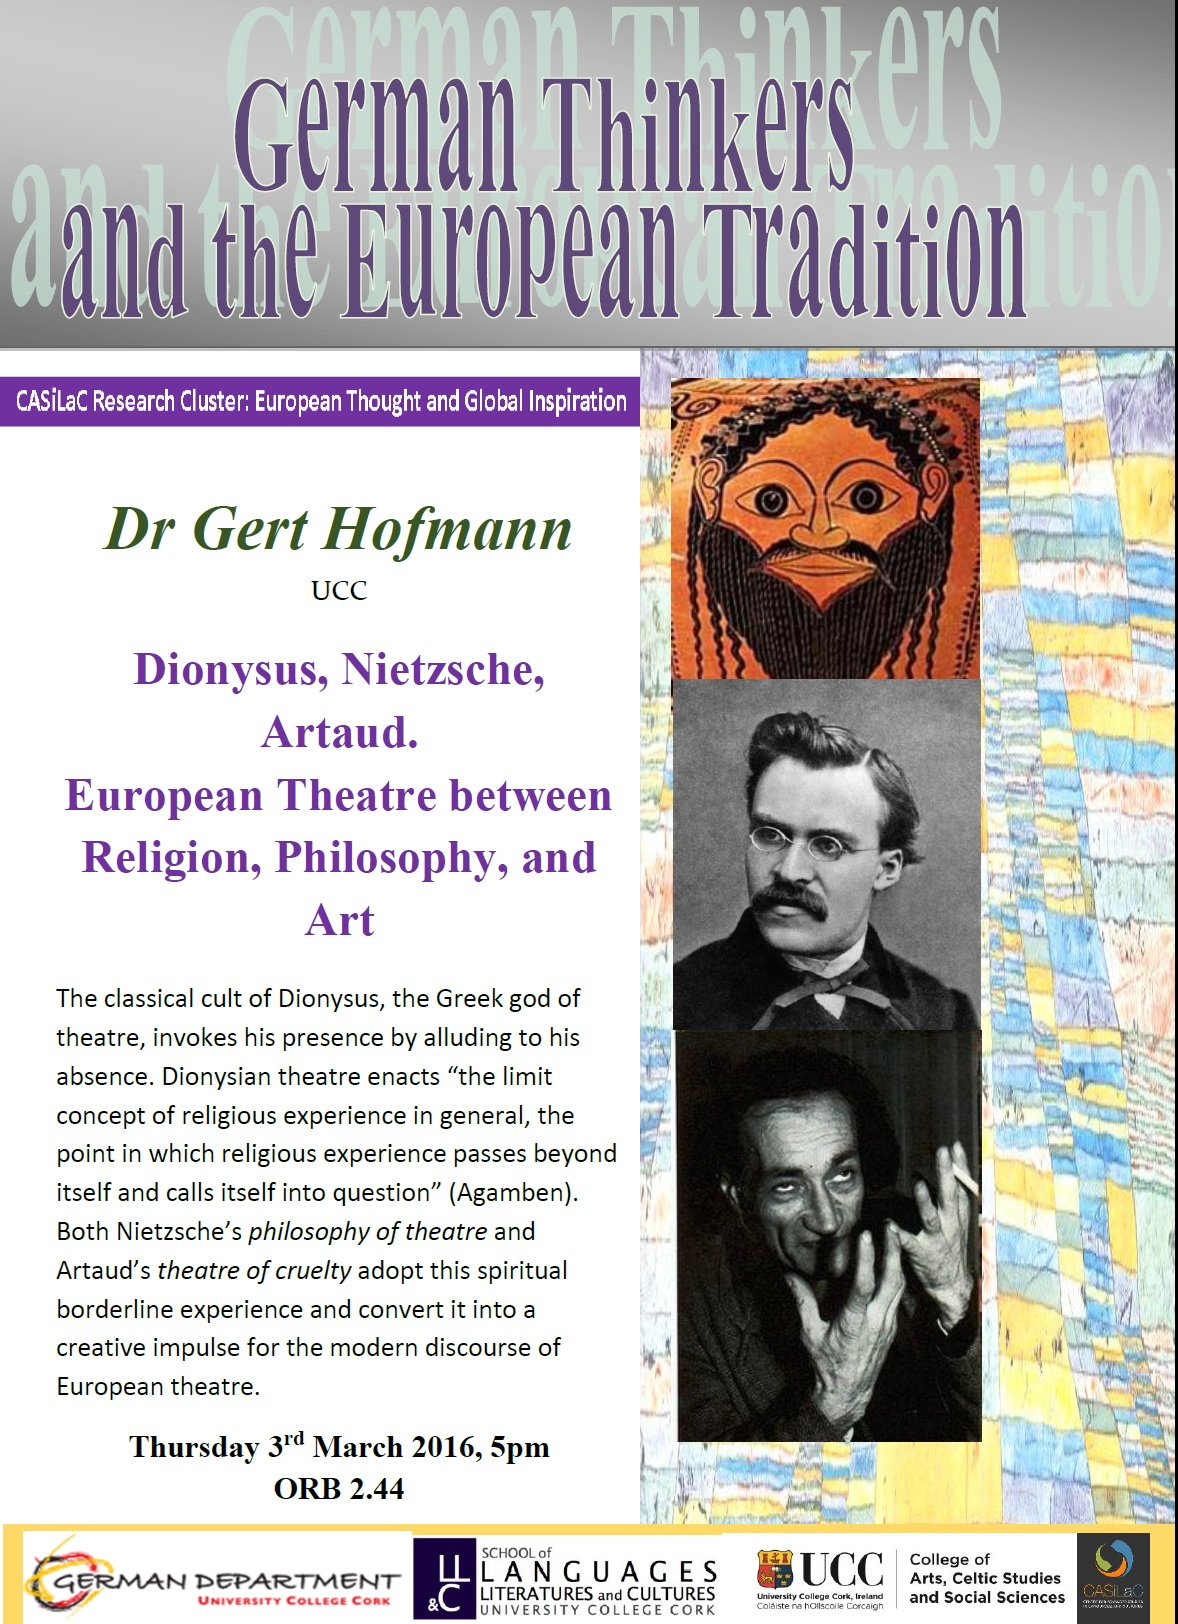 German Thinkers and the European Tradition